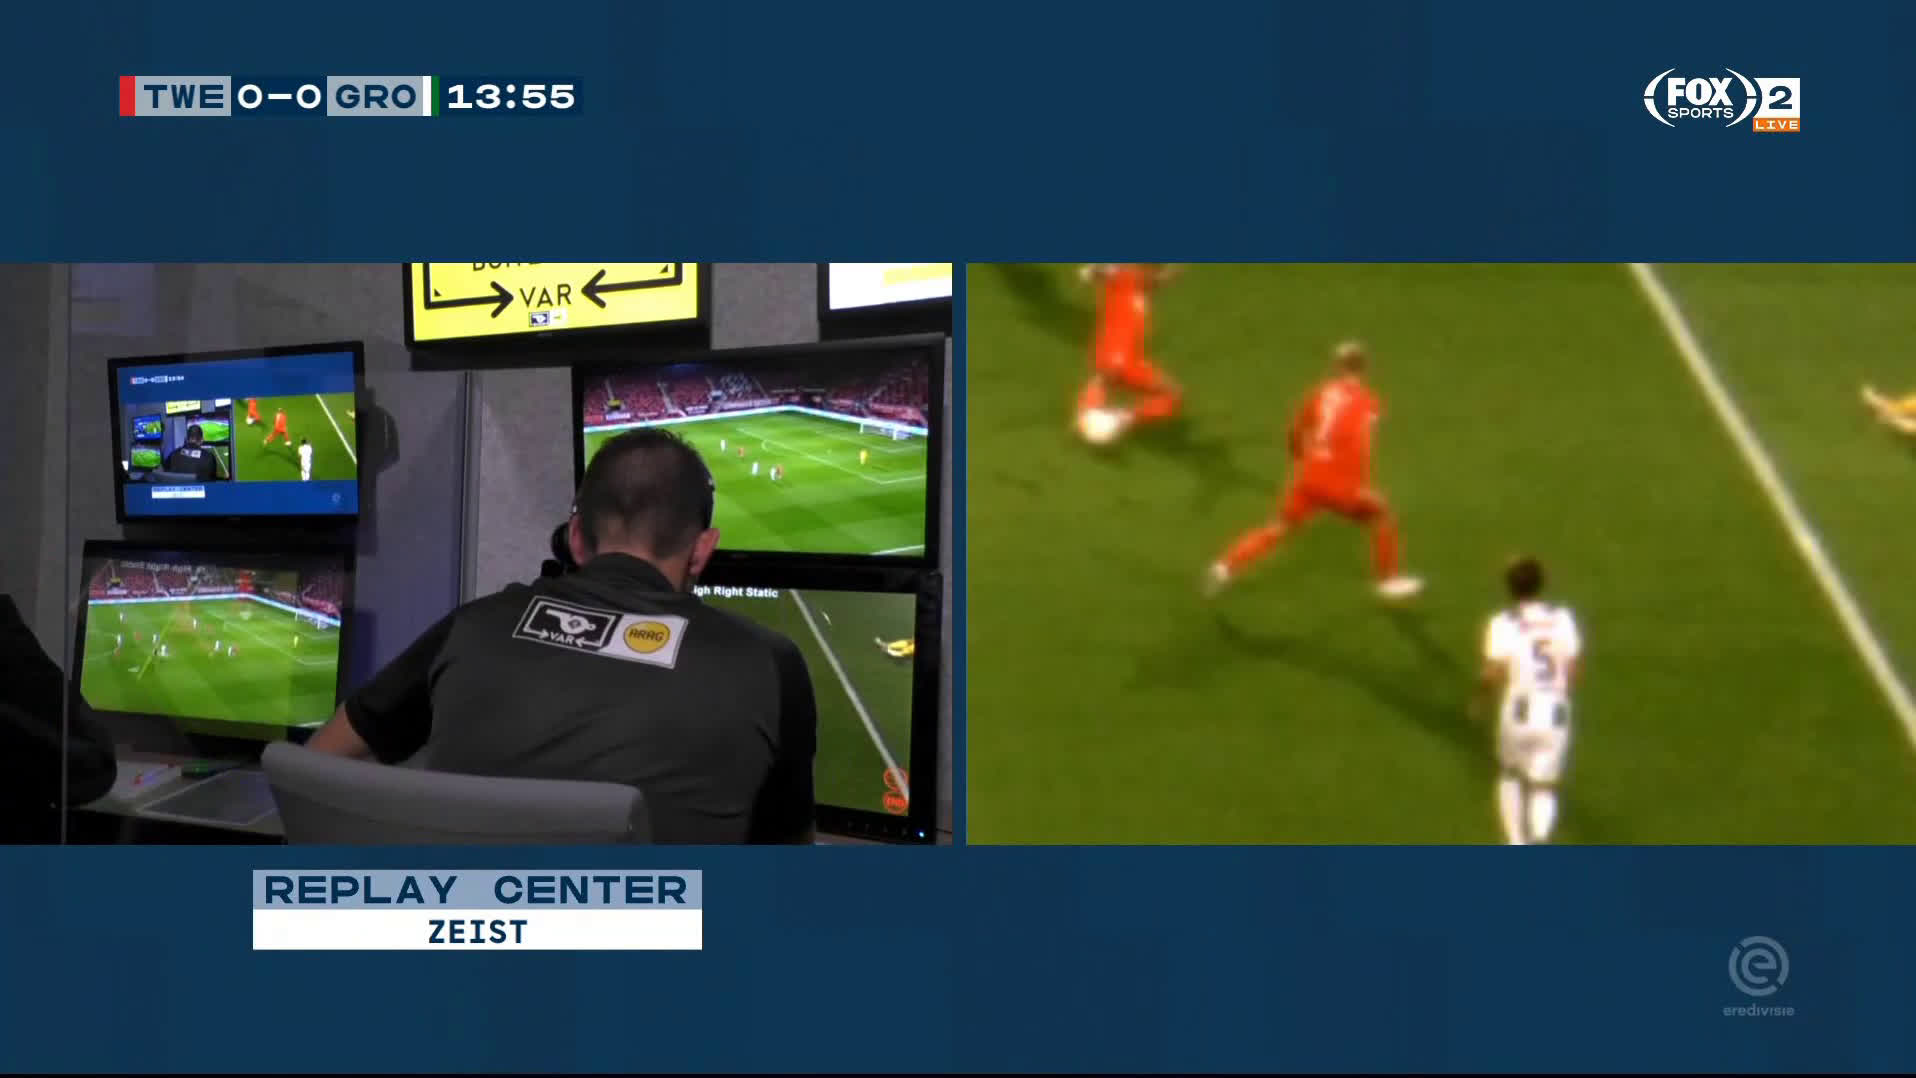 FC Twente vs FC Groningen | VAR takes 5 minutes just to make the wrong decision (look comment)